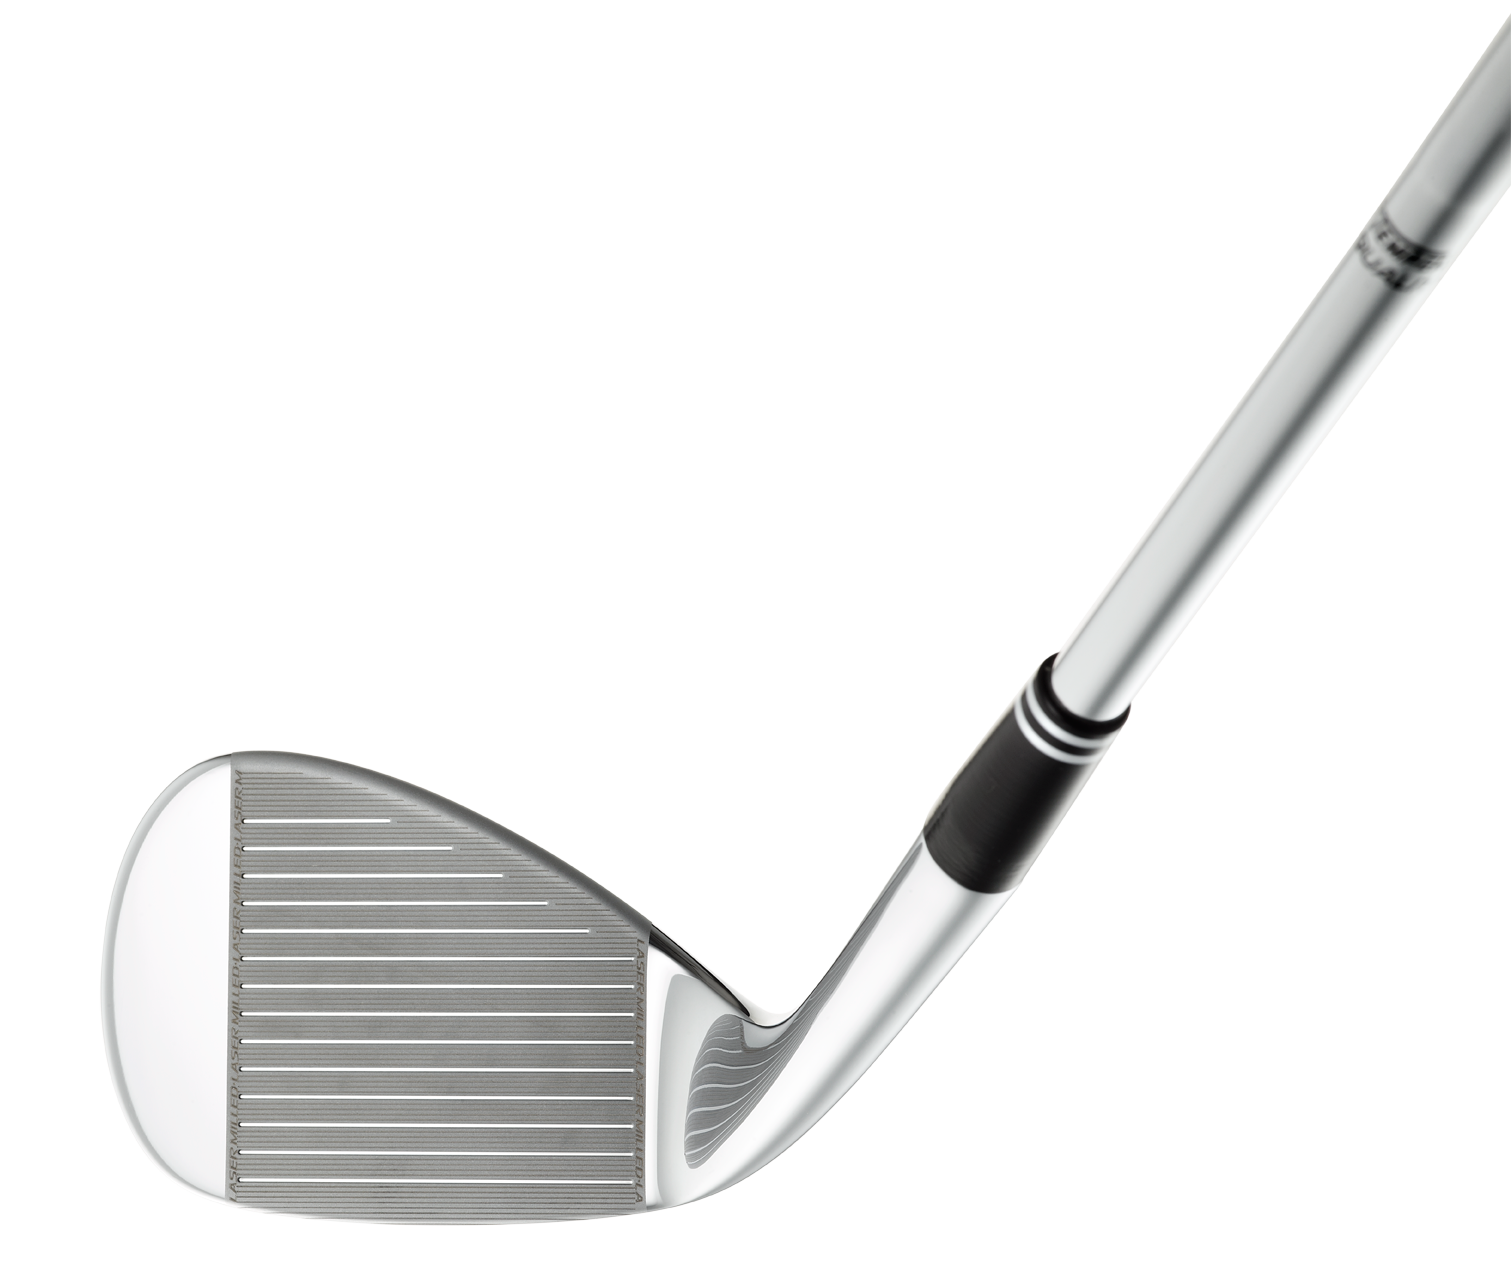 clipart free stock Png images transparent free. Golf clipart bat